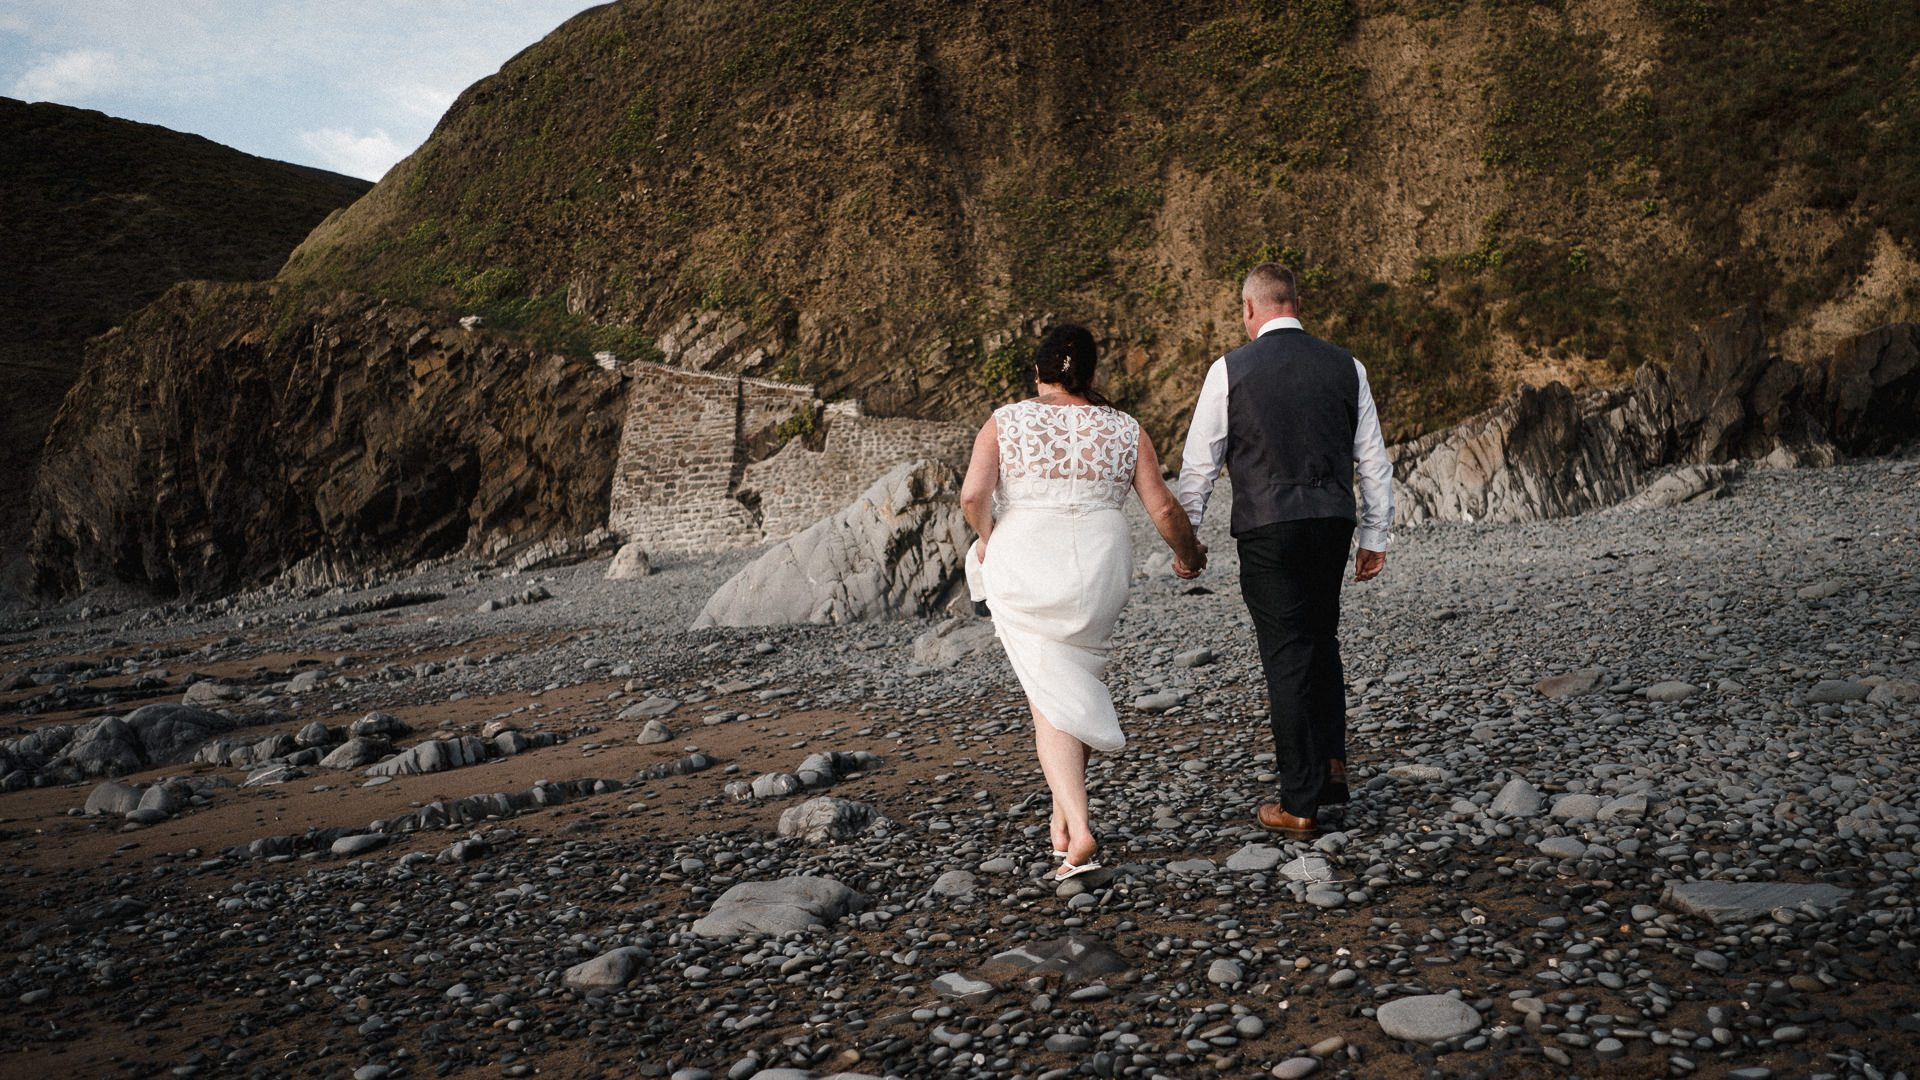 0113-DEVON-SOMERSET-WEDDING-PHOTOGRAPHER-0570-BEST-OF-2019-LOUISE-MAY-DEVON-SOMERSET-WEDDING-PHOTOGRAPHY-20190910-19-01-12-20190910190112LM107962